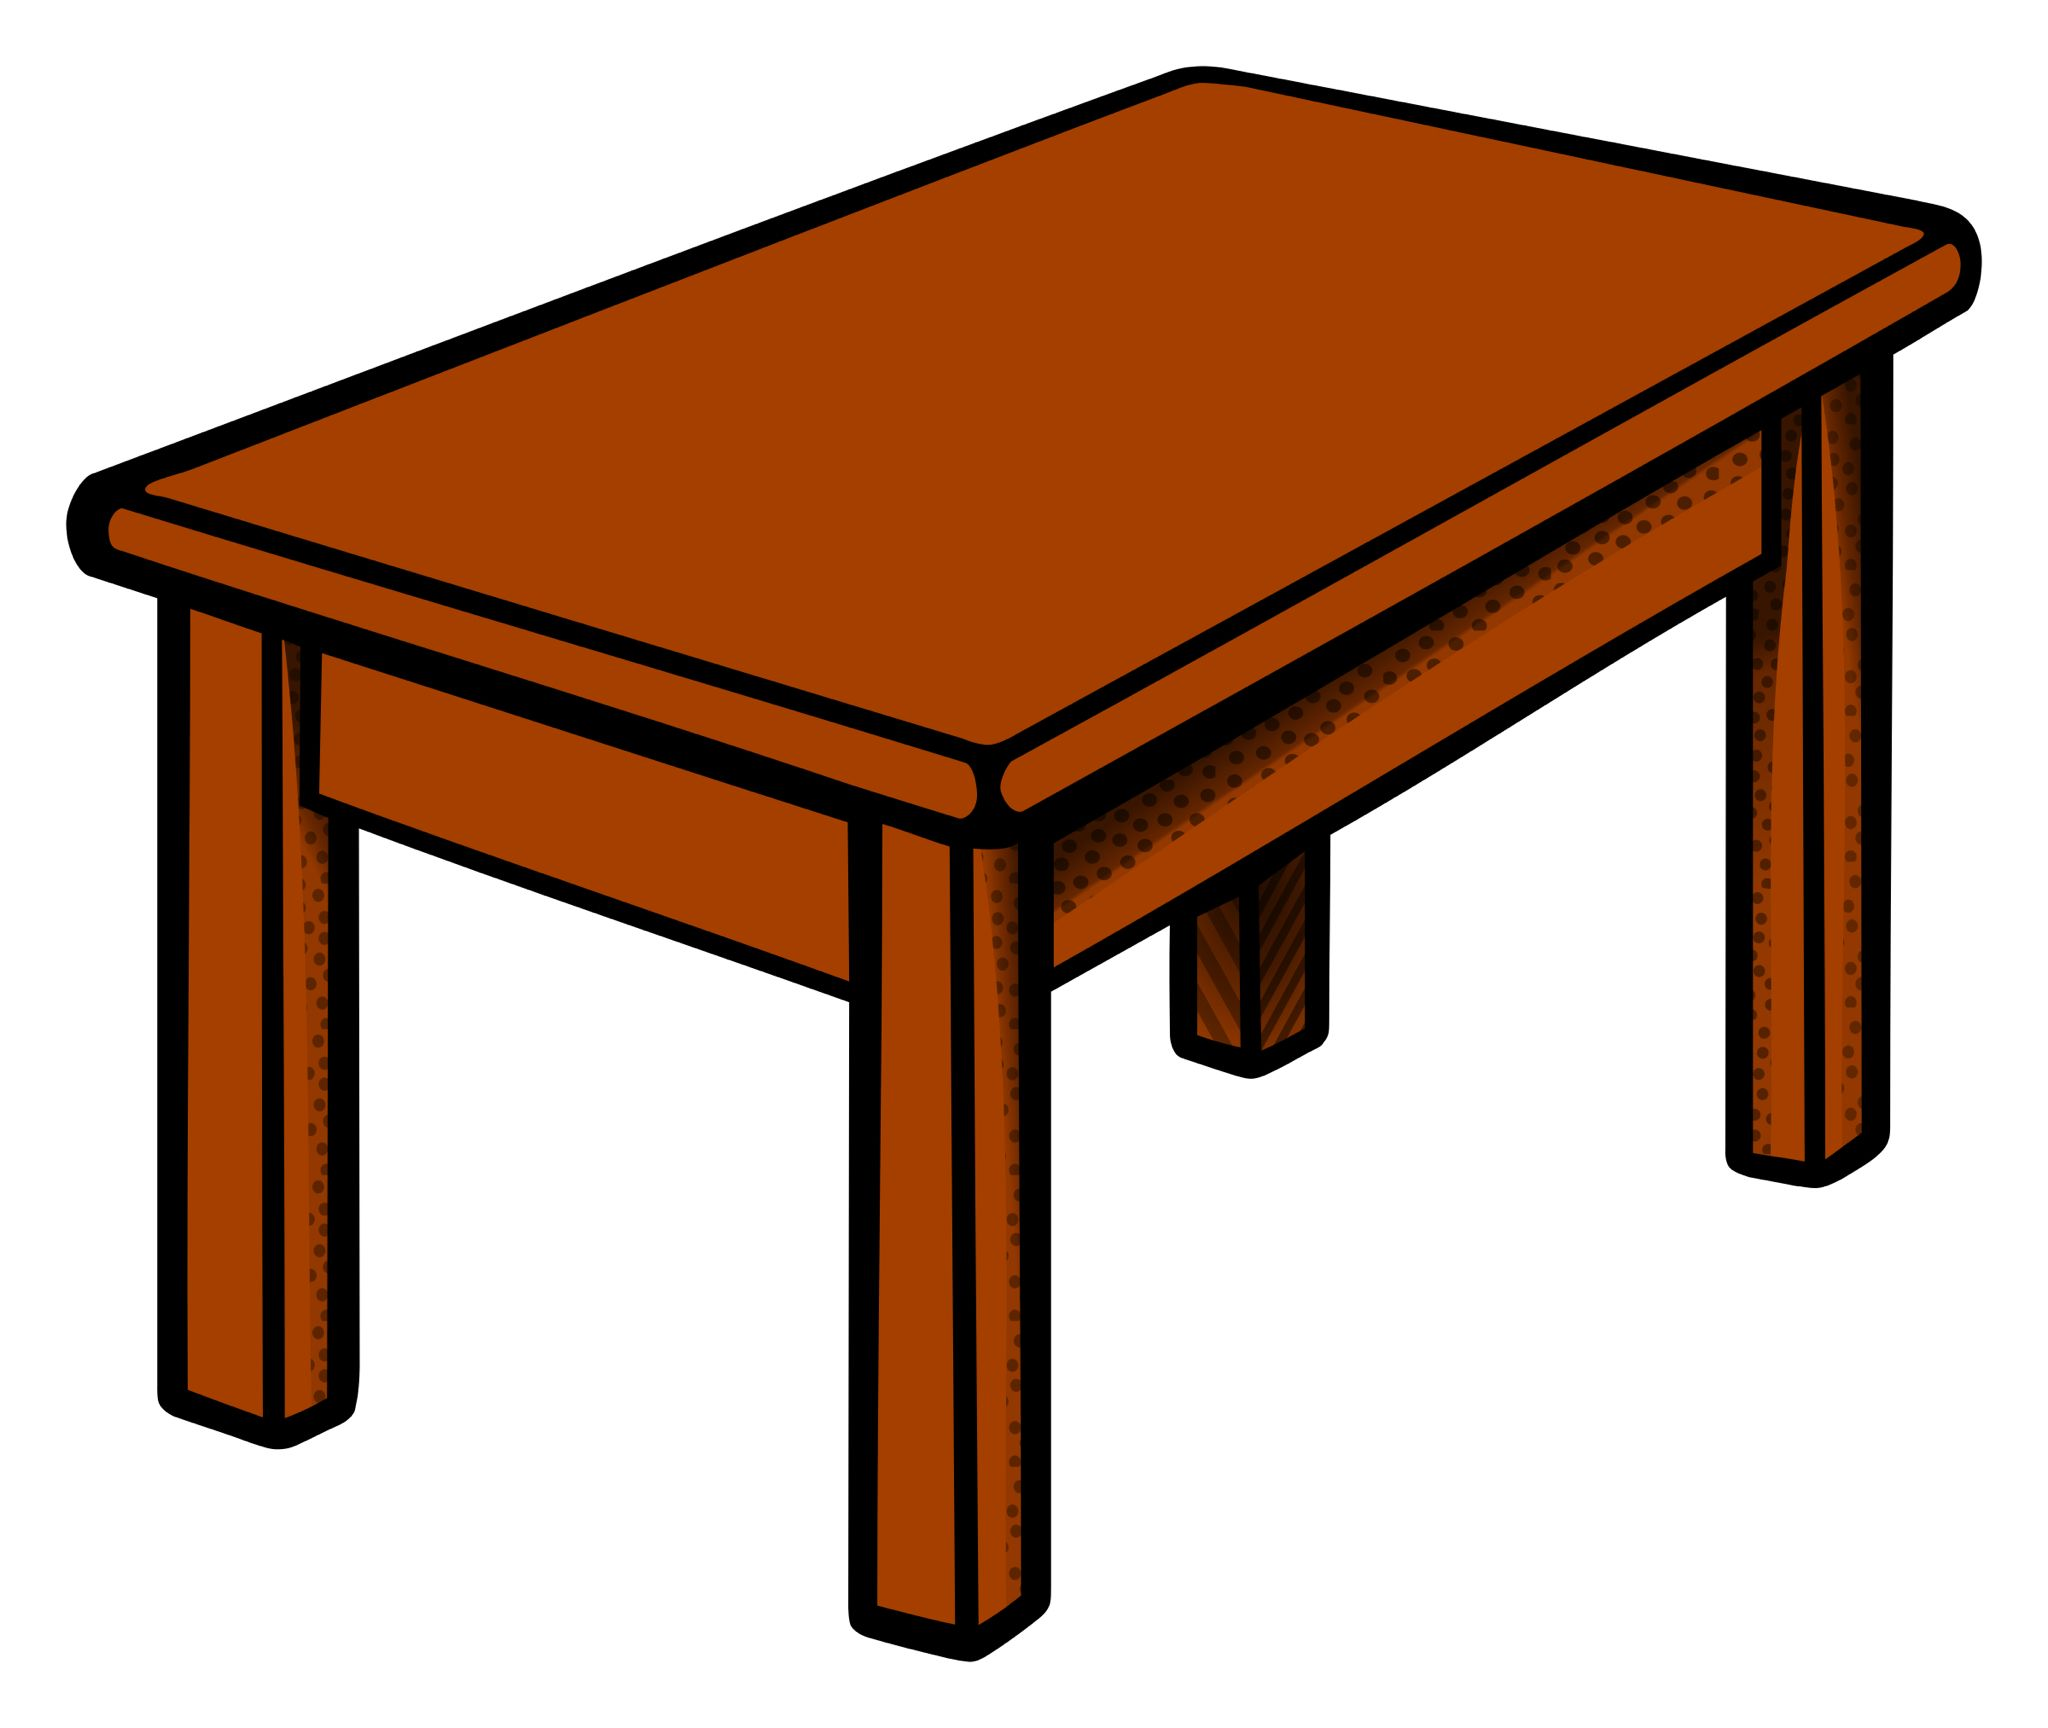 Don T Leave Points On The Table The Exam Contains 30 Questions That You Have To Answer In 1 Hour And 45 Minutes If Time Life Table Wooden Tables Simple Table